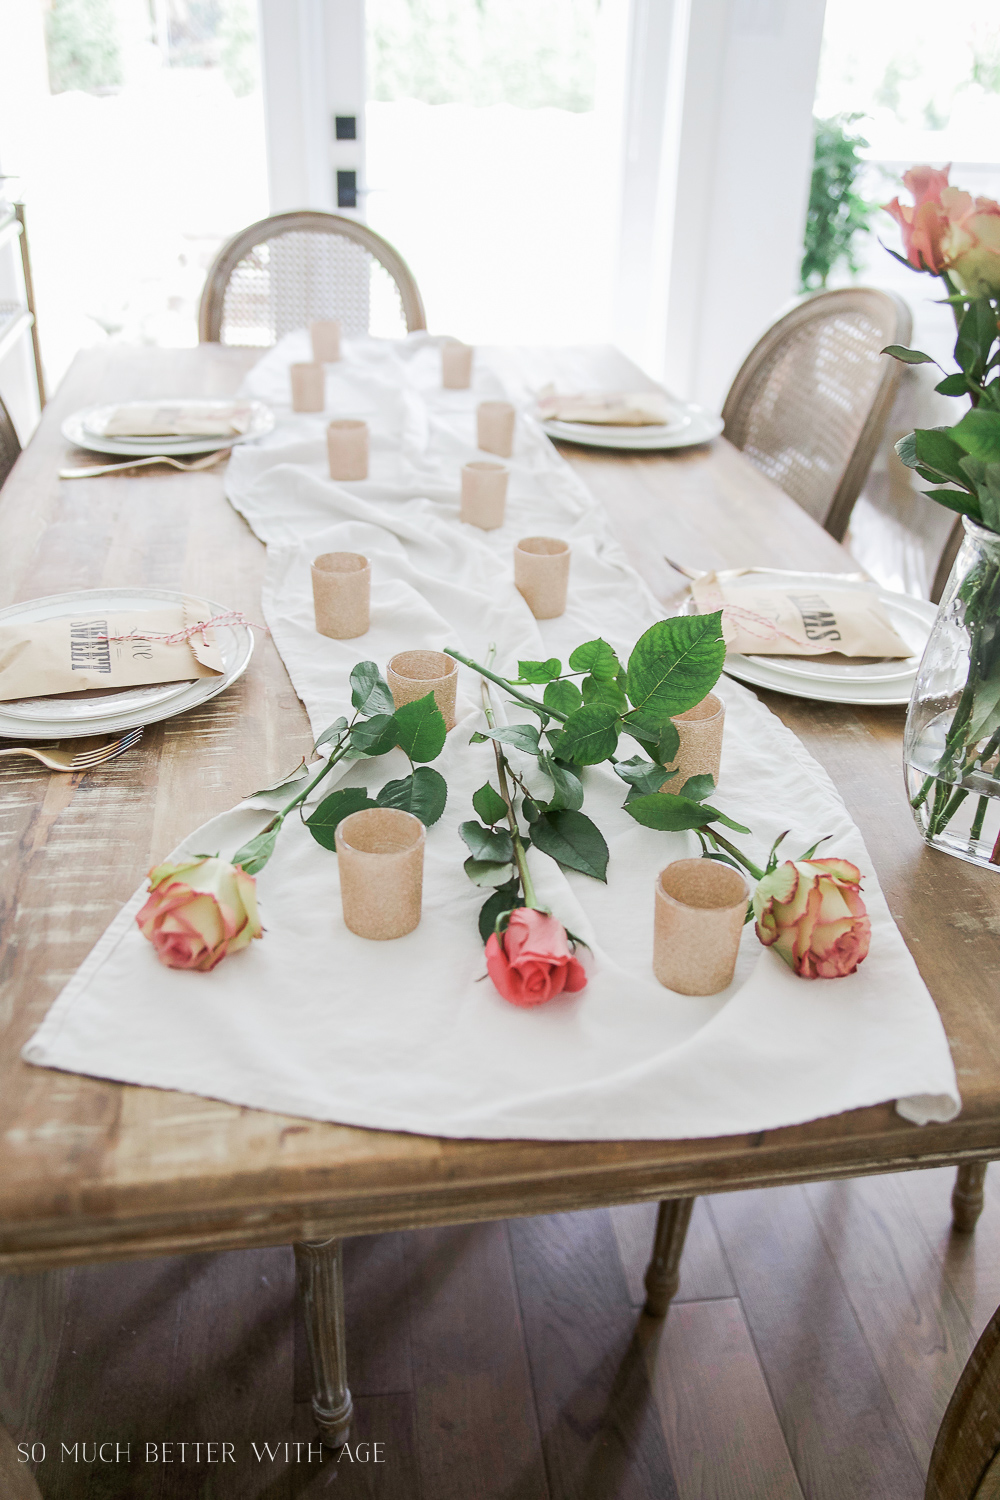 How to Set a Beautiful Valentine's Day Table Setting, a step-by-step guide / yellow roses on table - So Much Better With Age